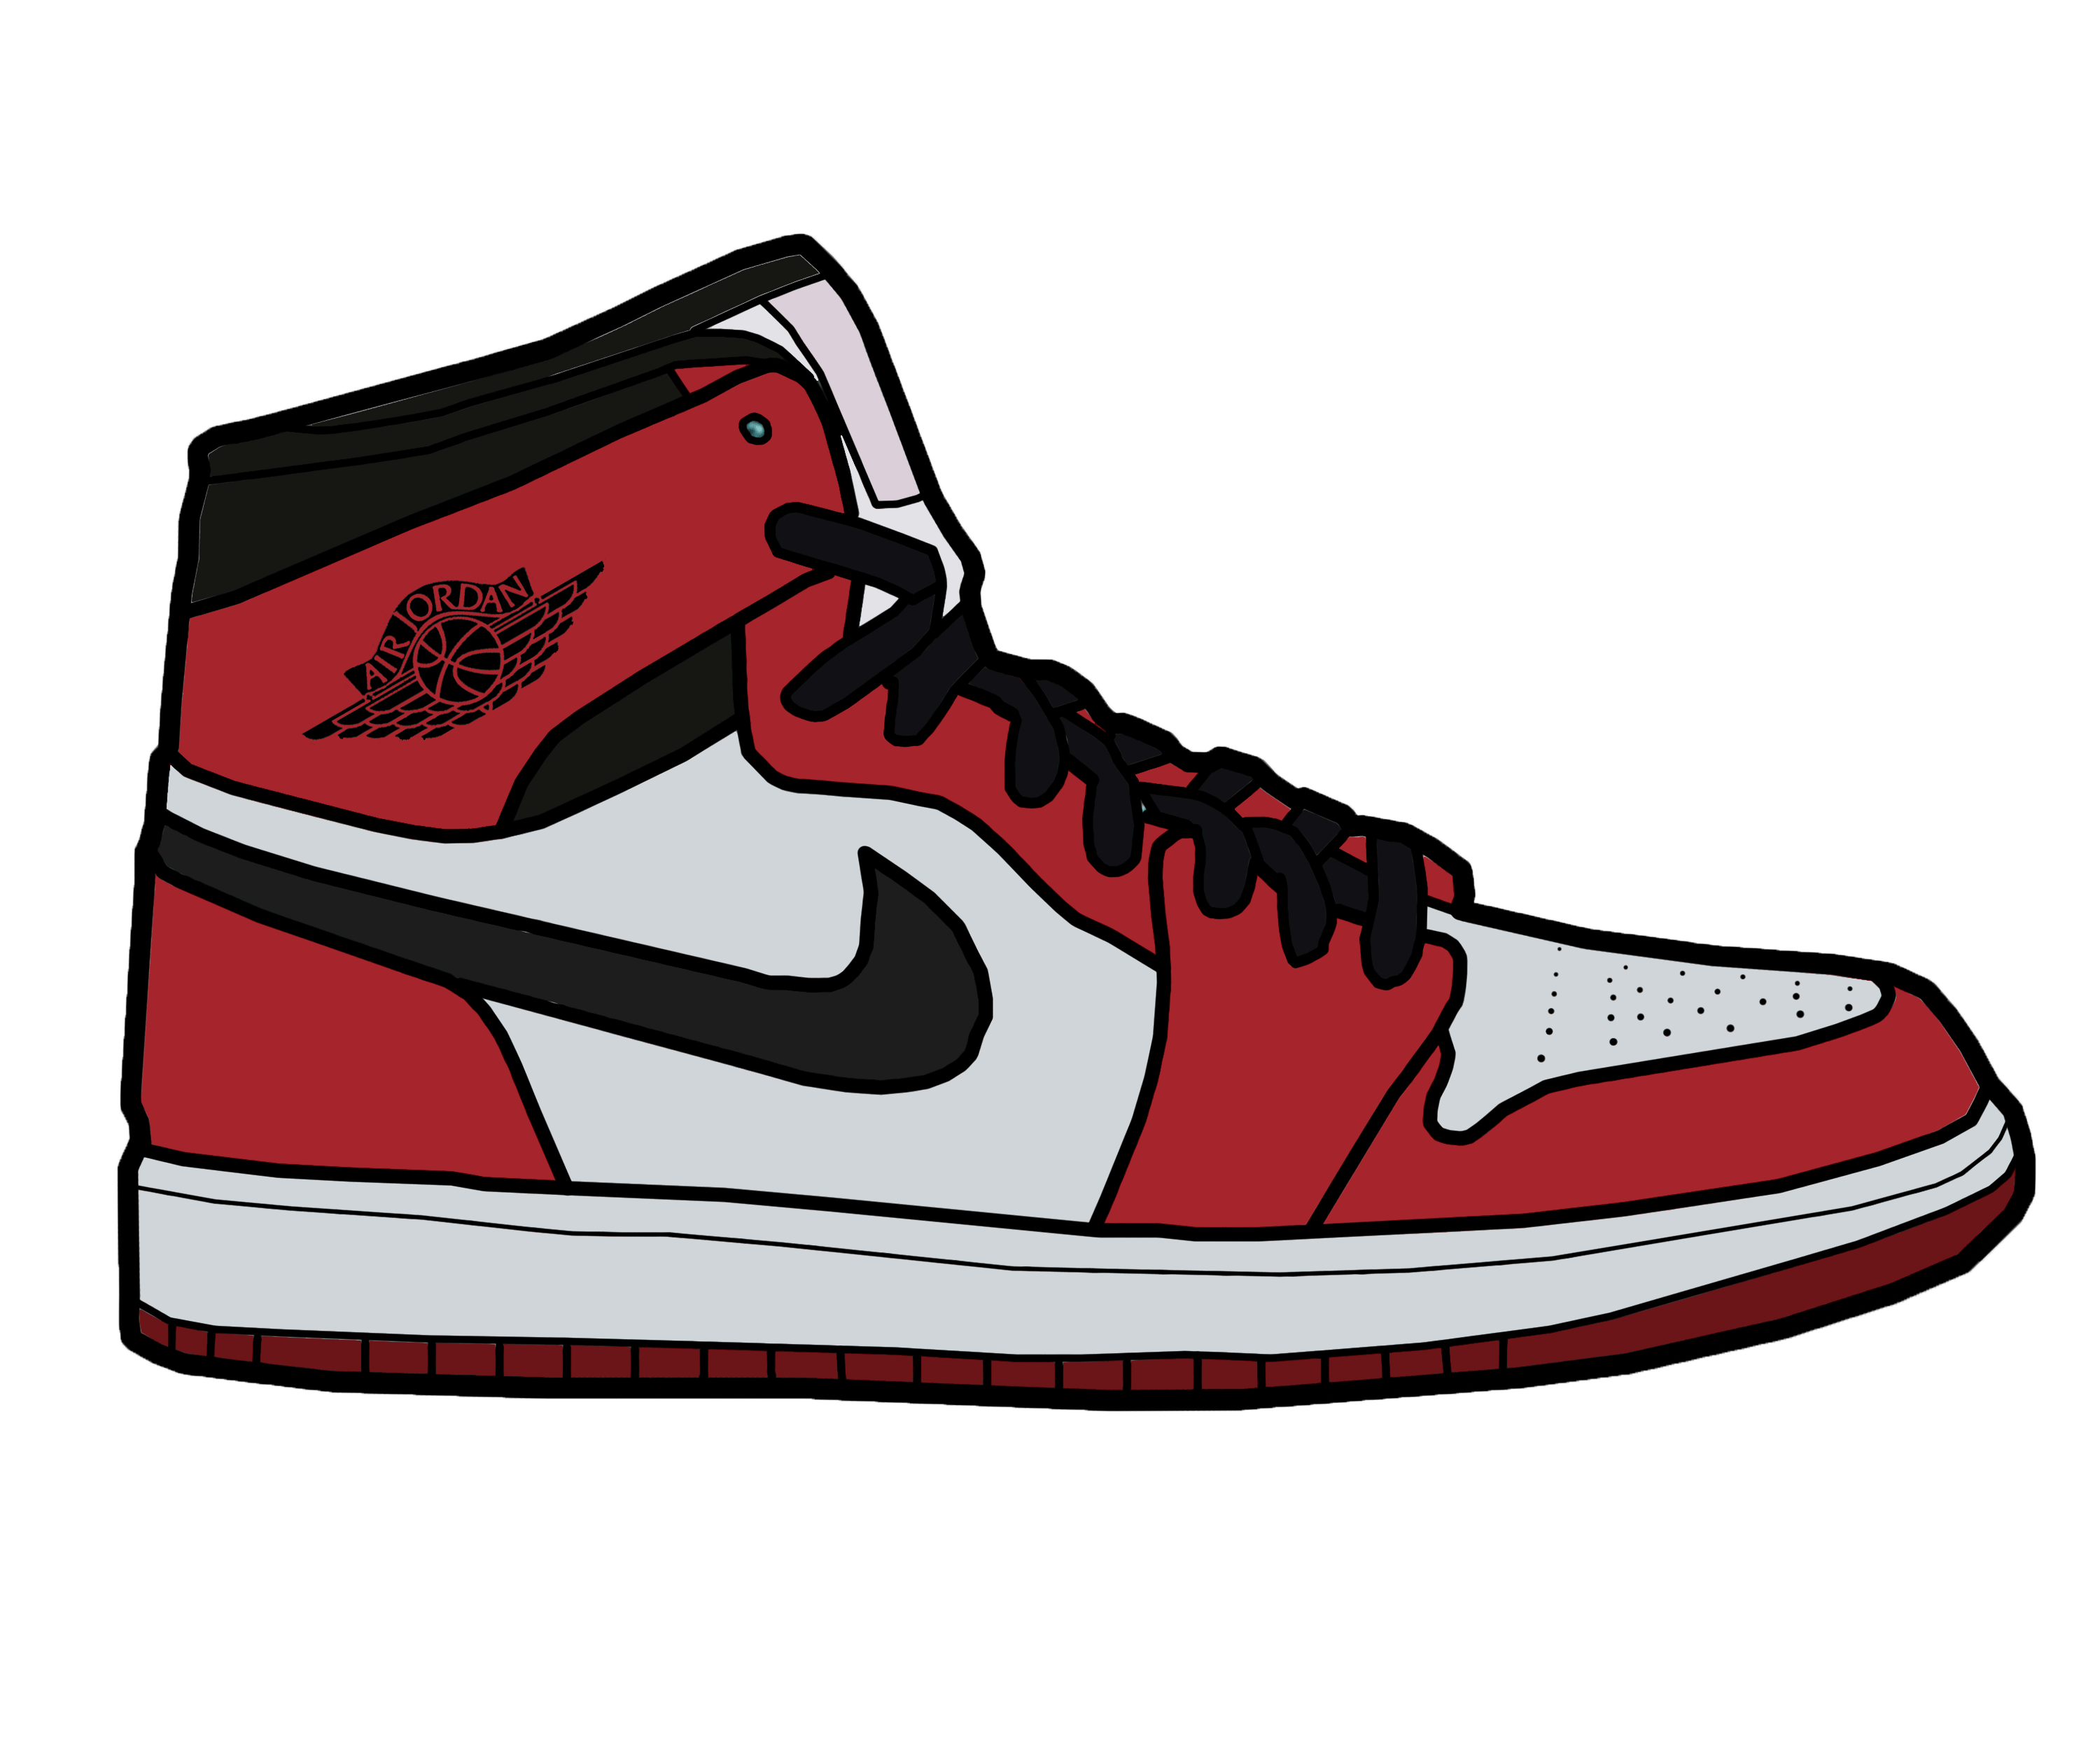 Shoe Drawing Jordans at GetDrawings